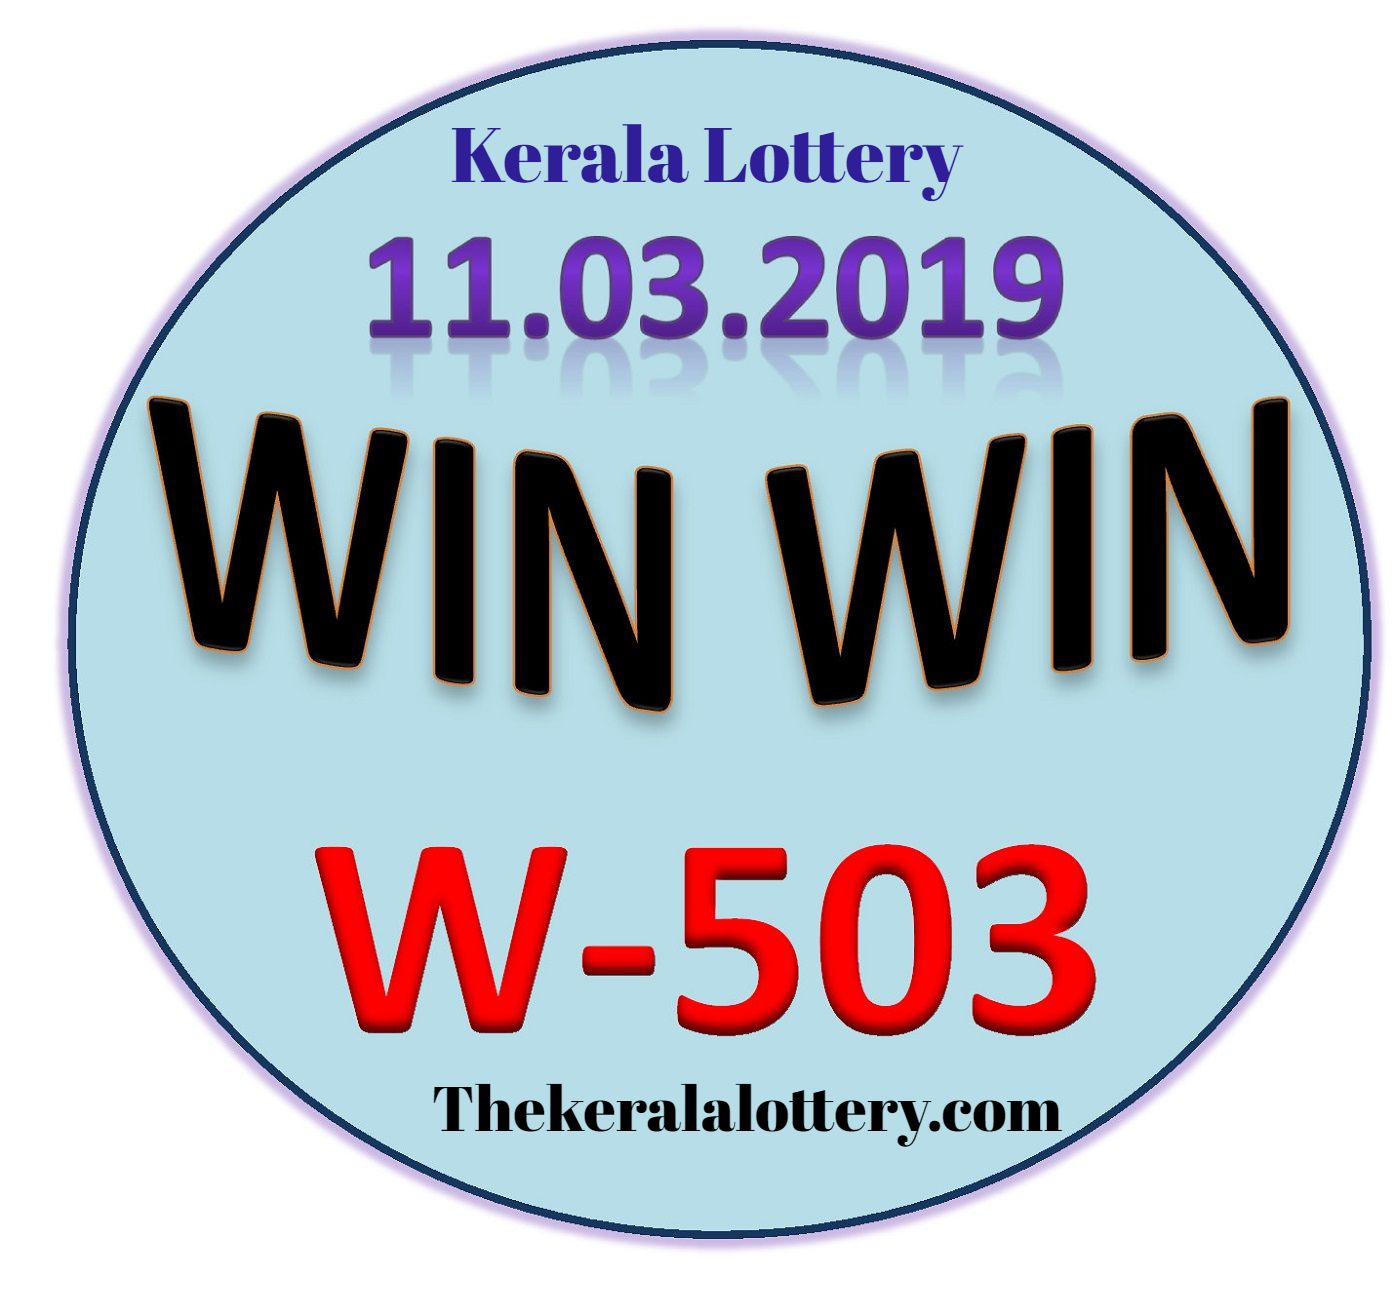 Win Win Lottery W 503 Kerala Lottery Result Today 11 03 2019 With